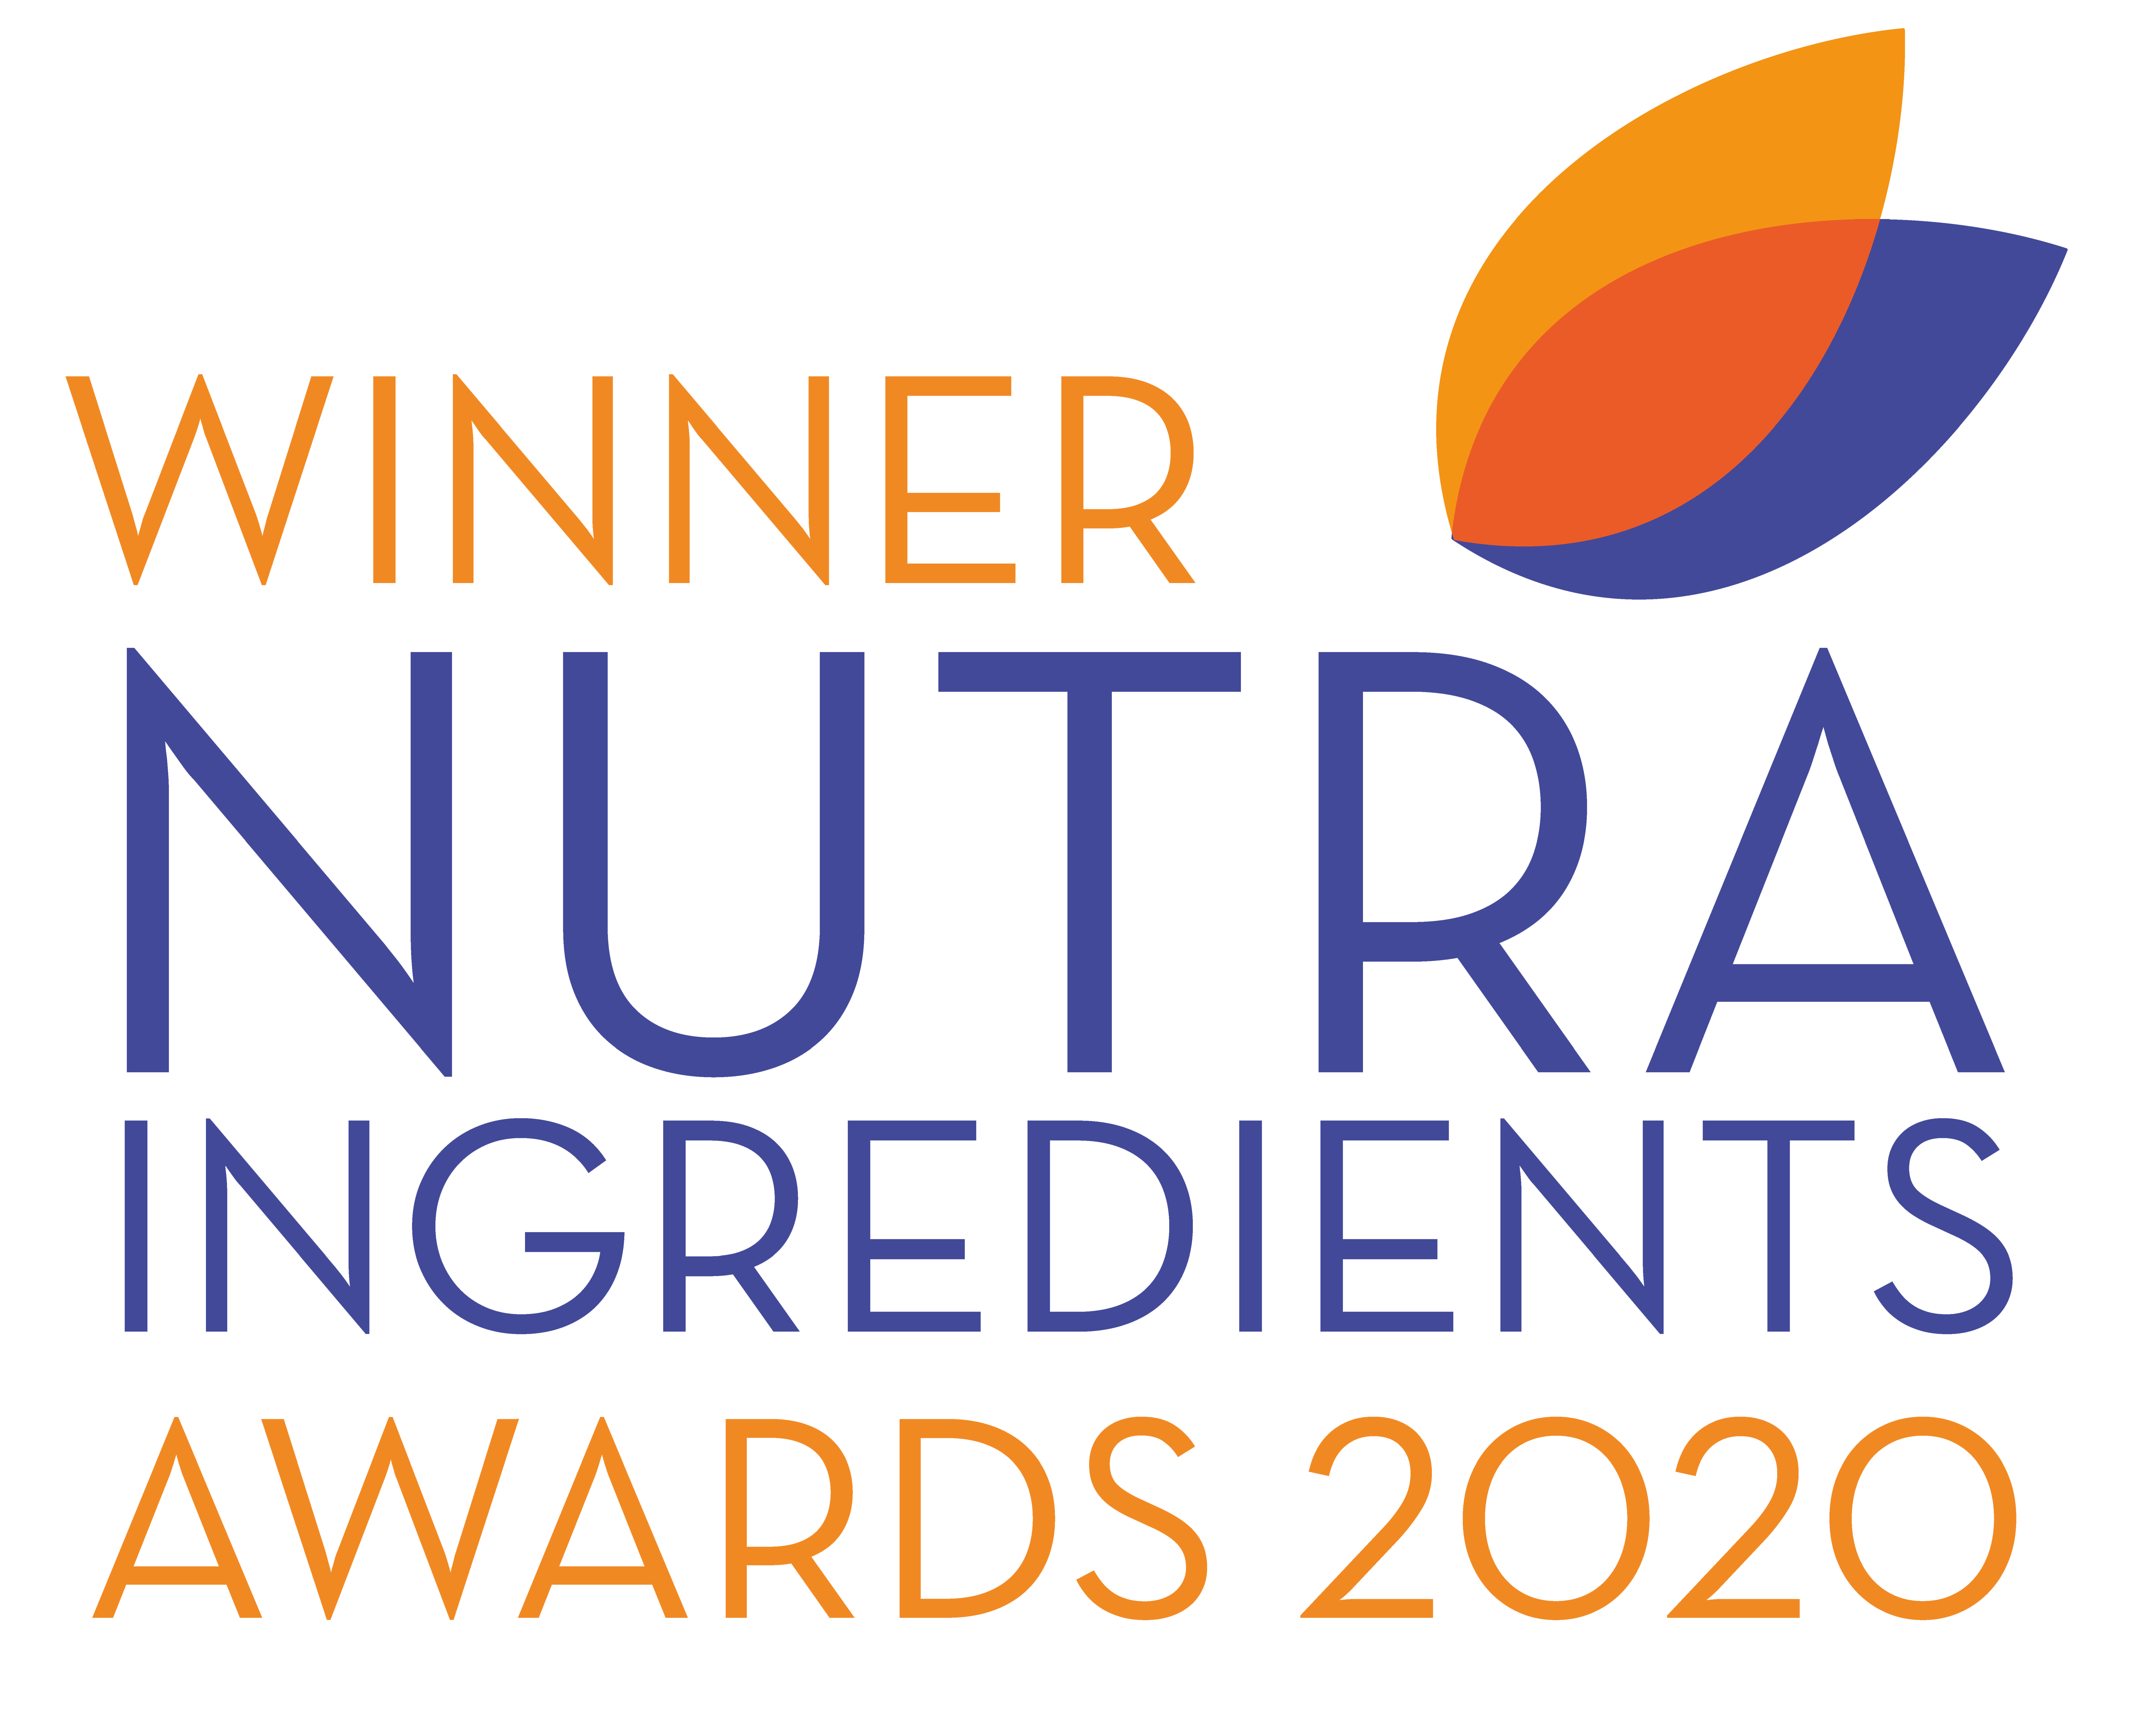 NUTRA INGRIDIENTS AWARD 2020